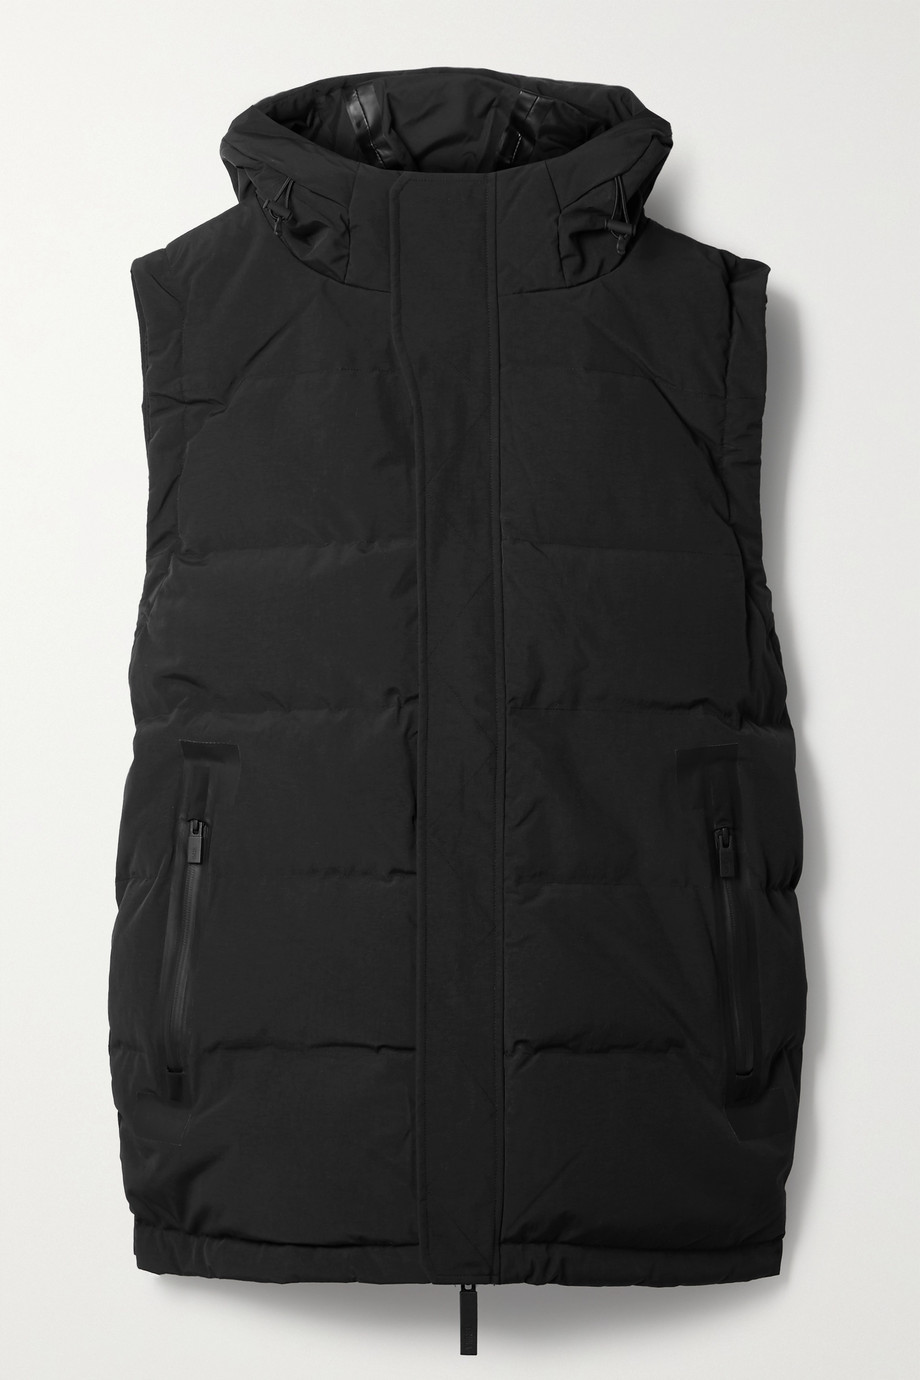 TEMPLA 2L 20K hooded quilted ski vest